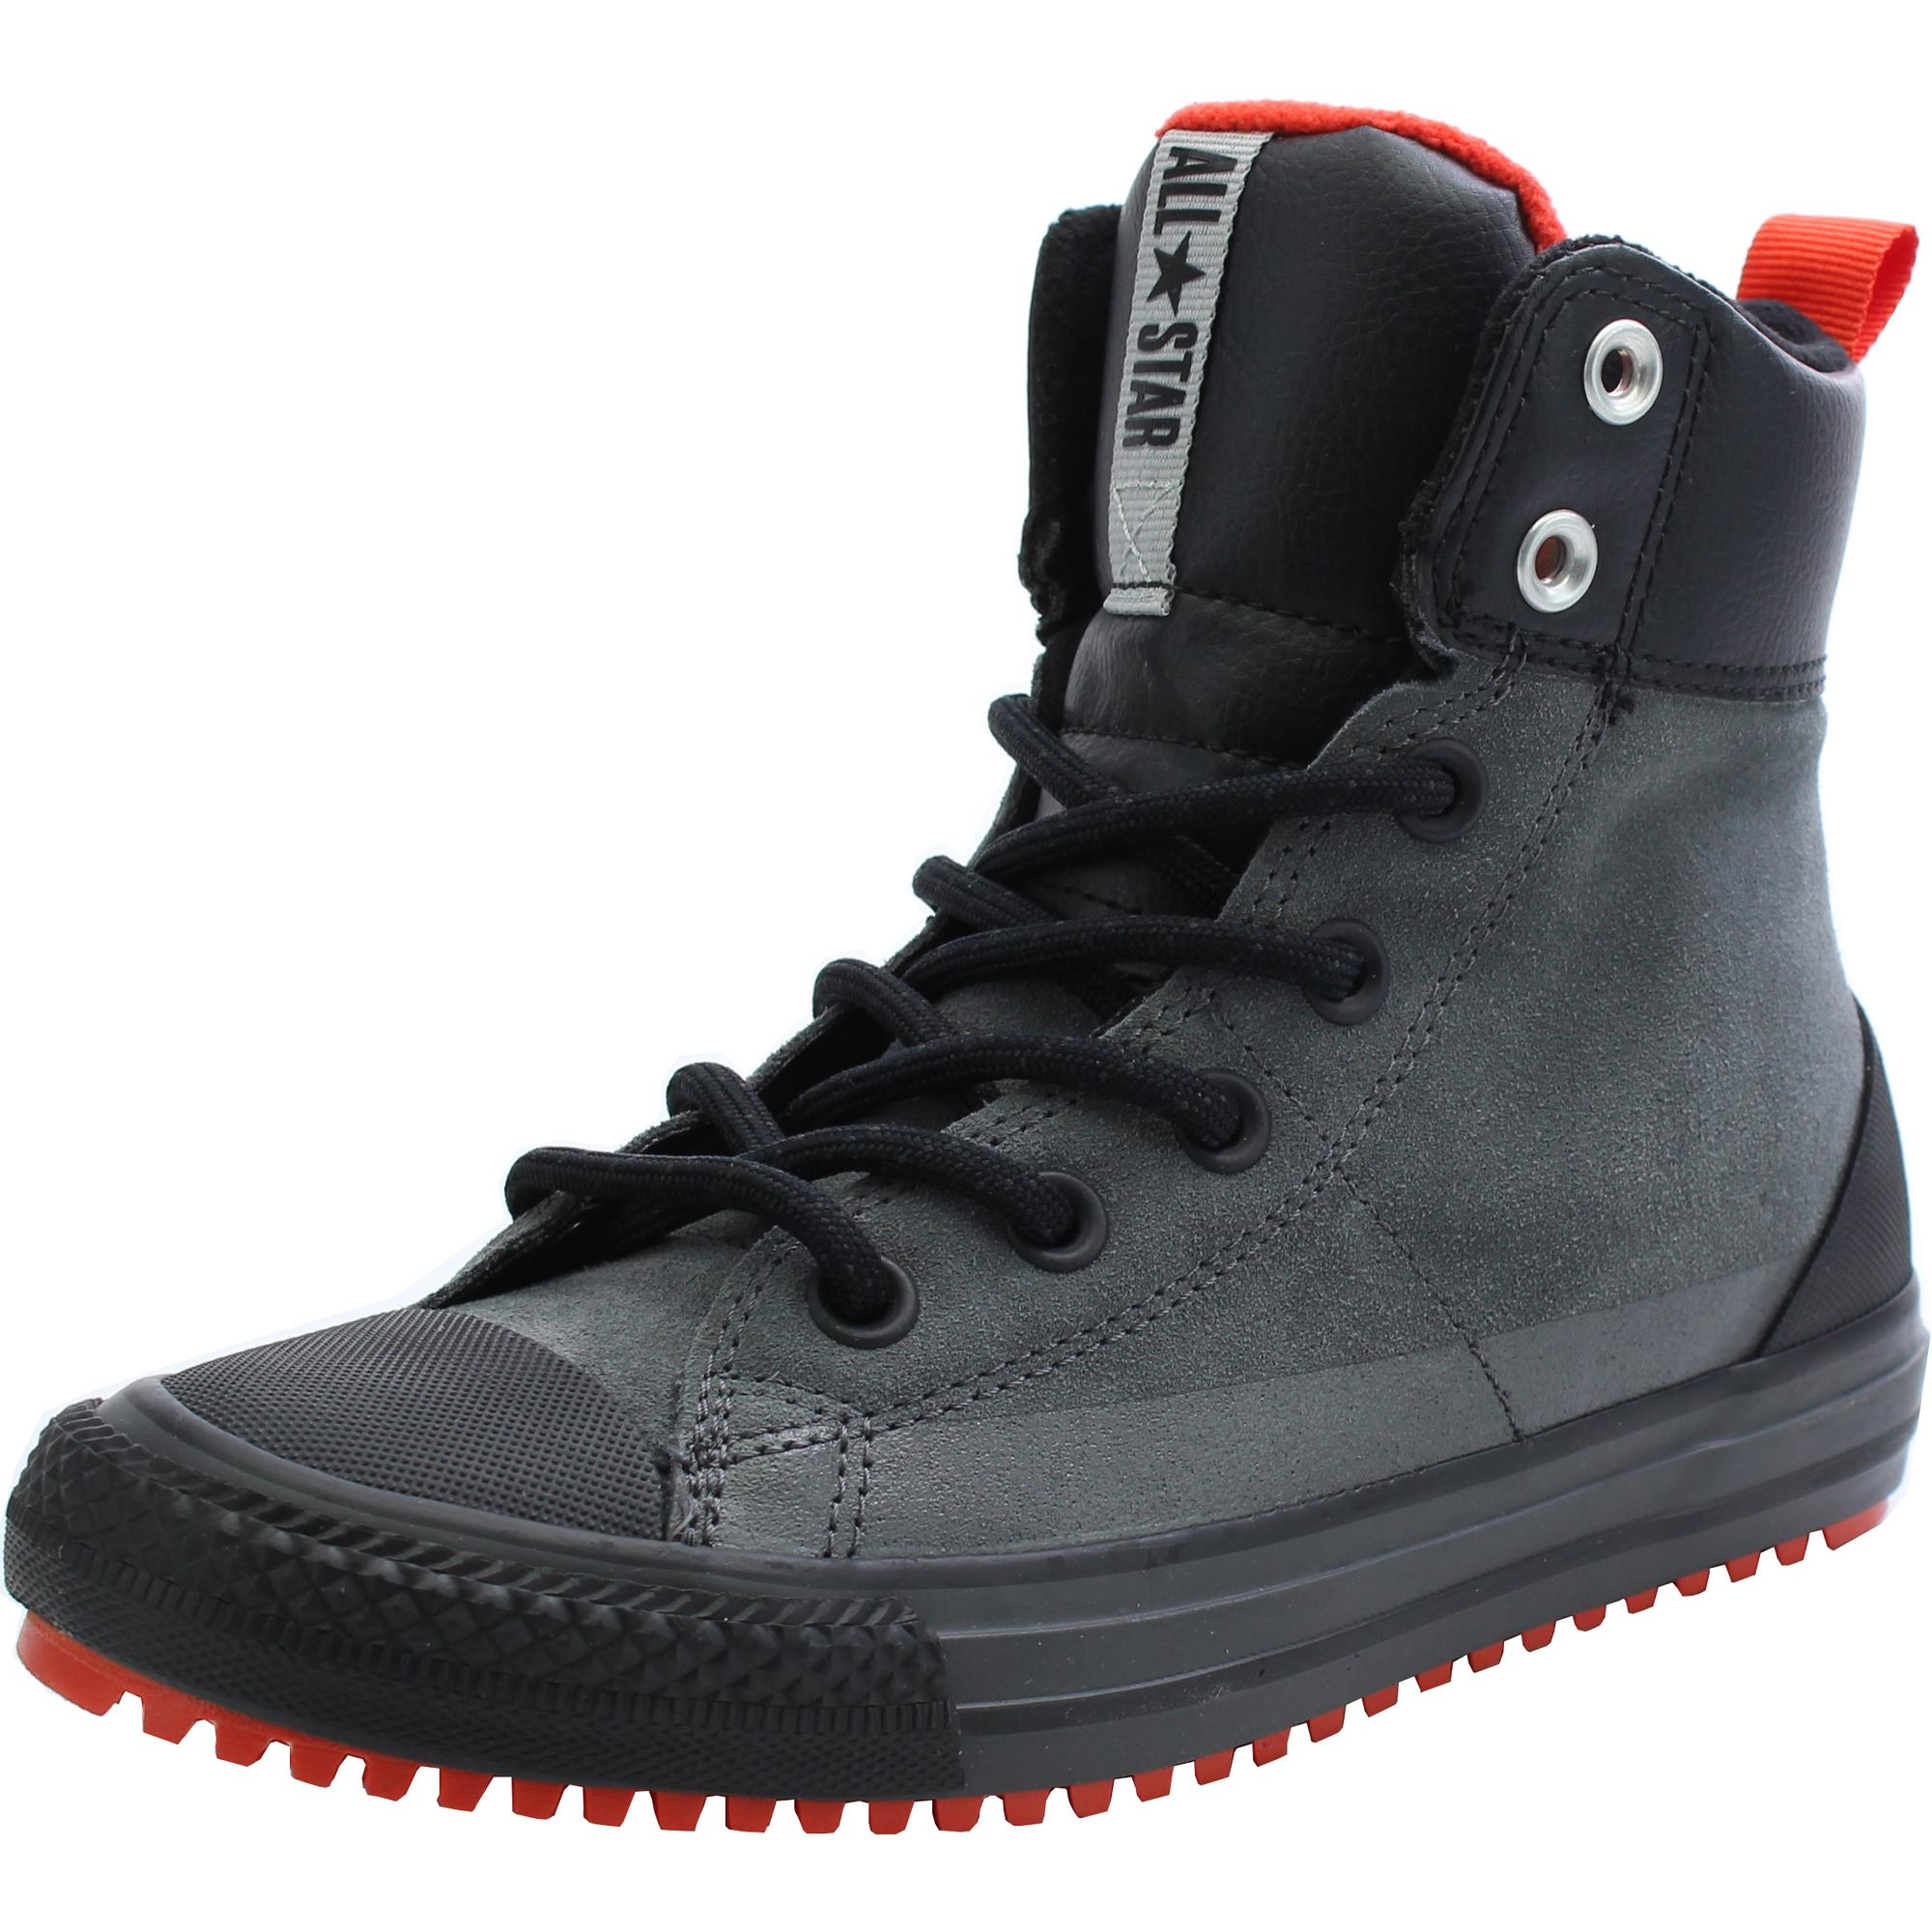 Converse Chuck Taylor All Star Weatherized Asphalt Pergament